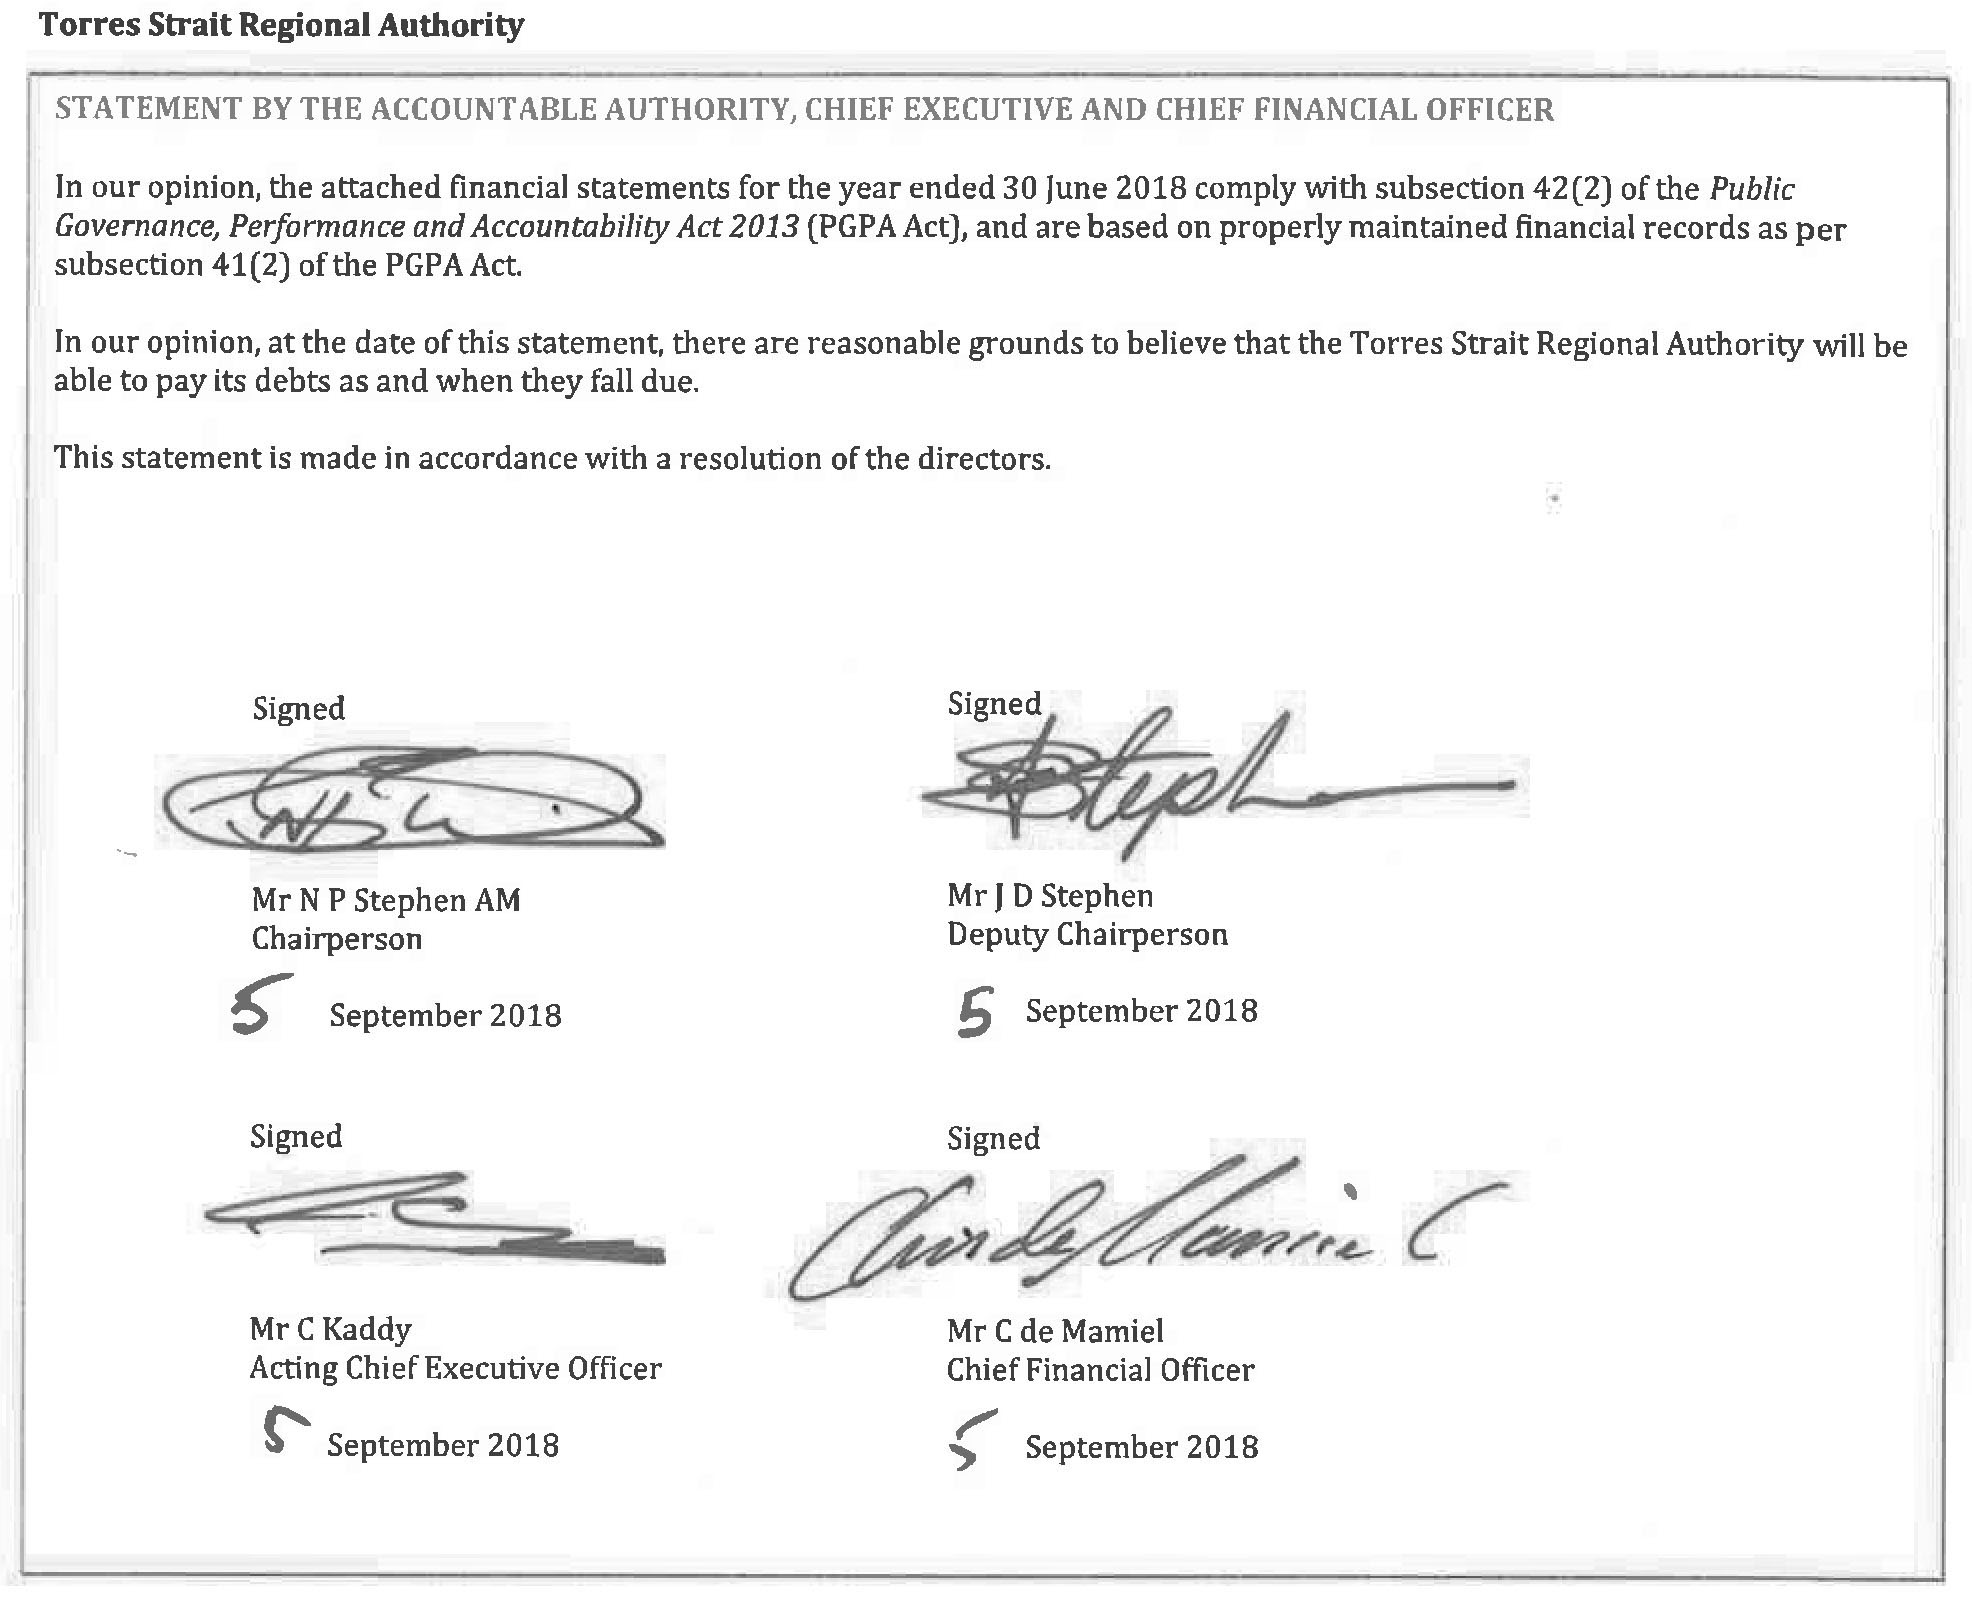 A photograph of the Statement by the Accountable Authority, Chief Executive and Chief Financial Officer